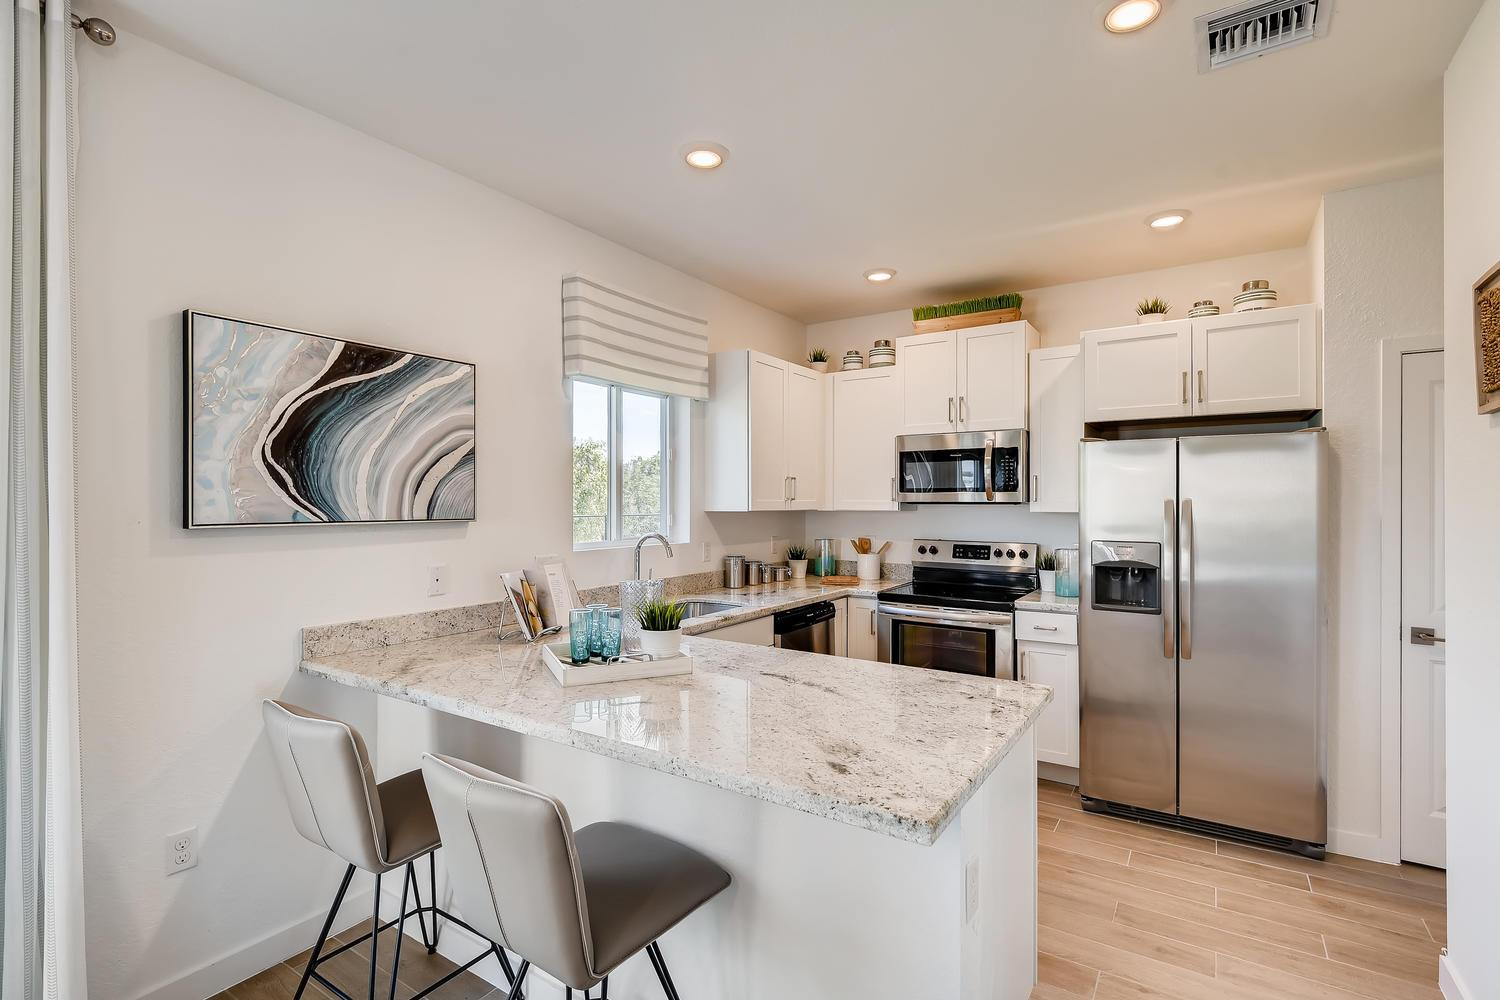 Kitchen featured in the Argent By D.R. Horton in Miami-Dade County, FL